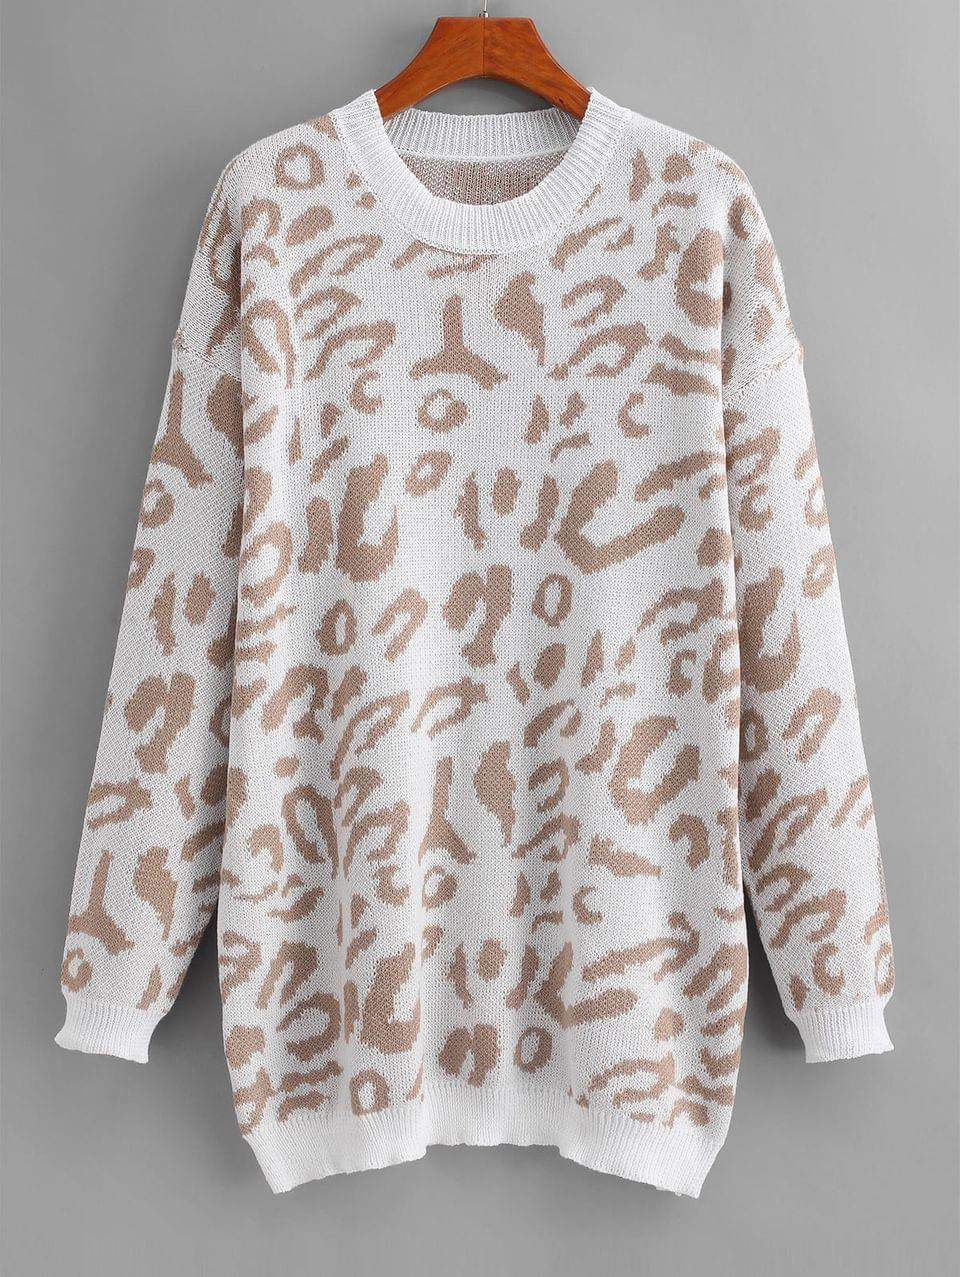 Women's Leopard Print Drop Shoulder Longline Sweater - White Xl